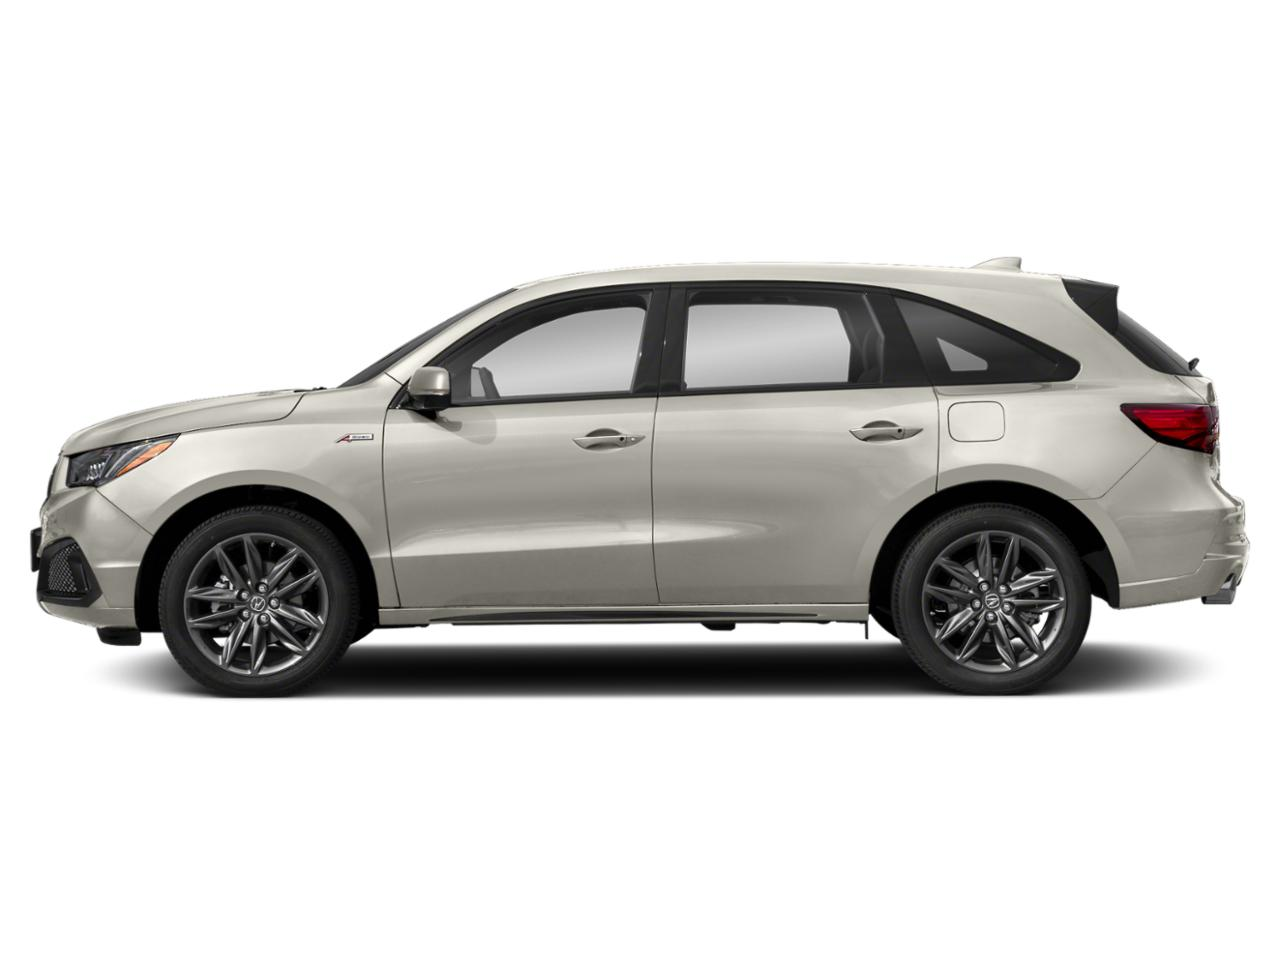 Platinum White Pearl 2020 Acura Mdx Used Suv For Sale San Antonio 5j8yd4h04ll022400